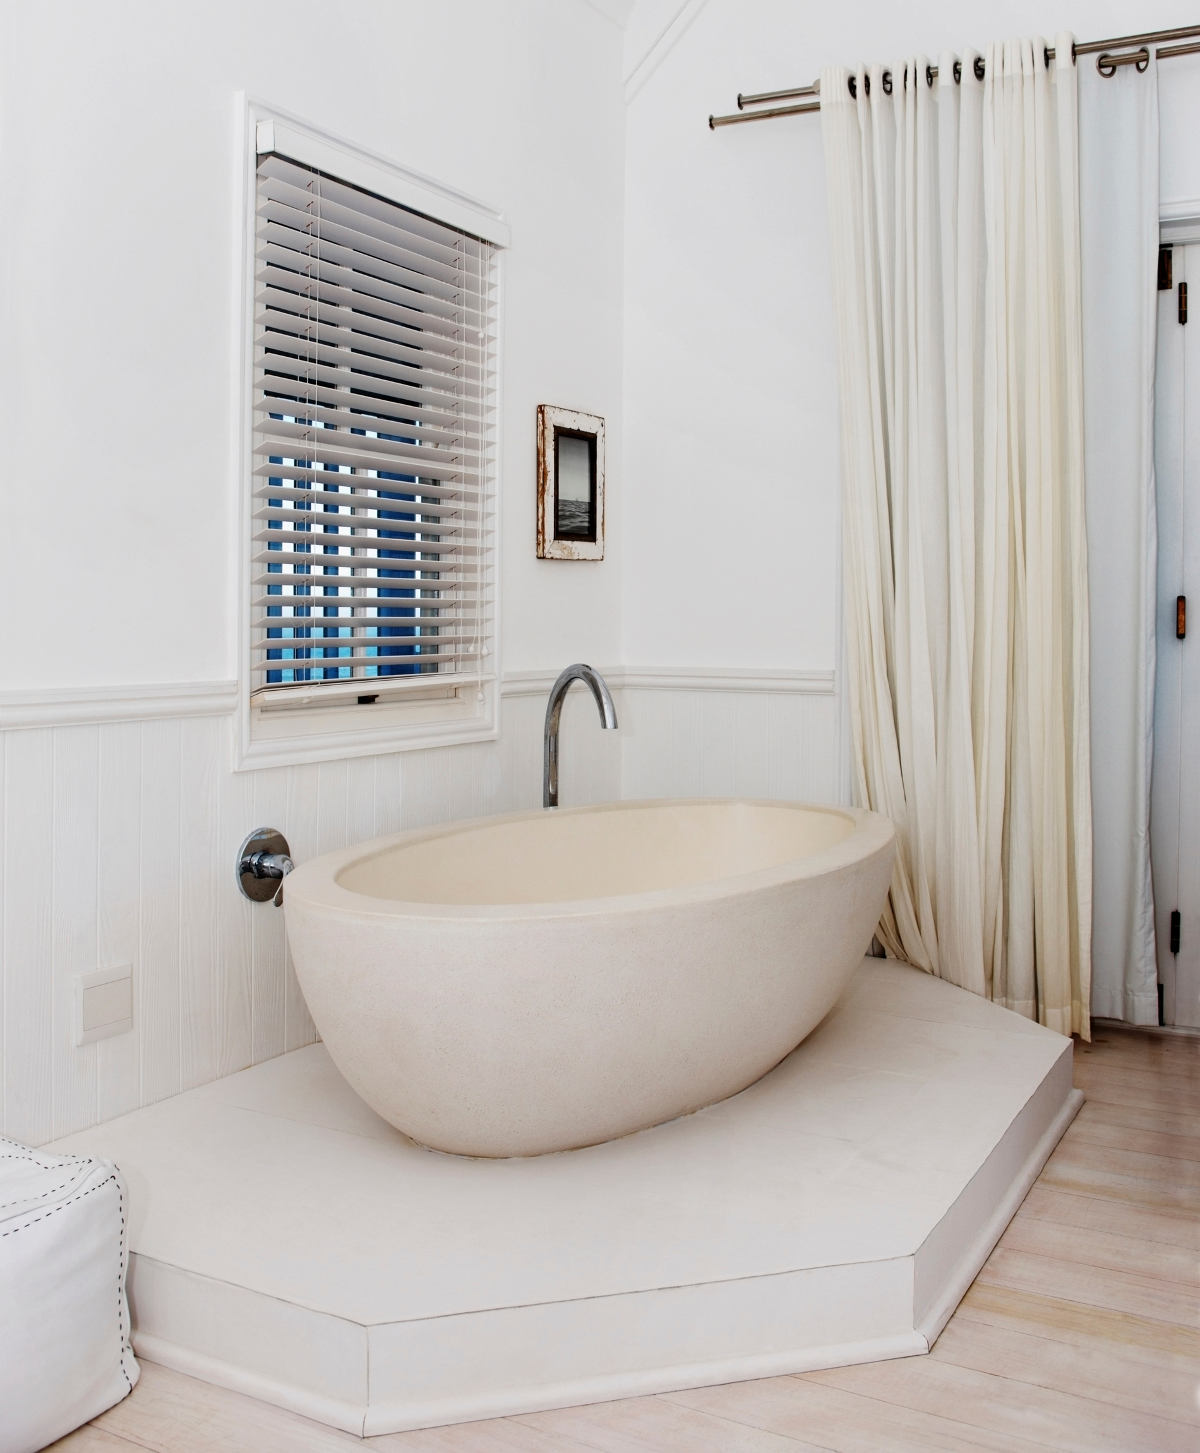 Beautiful white bathtub in the corner of a room